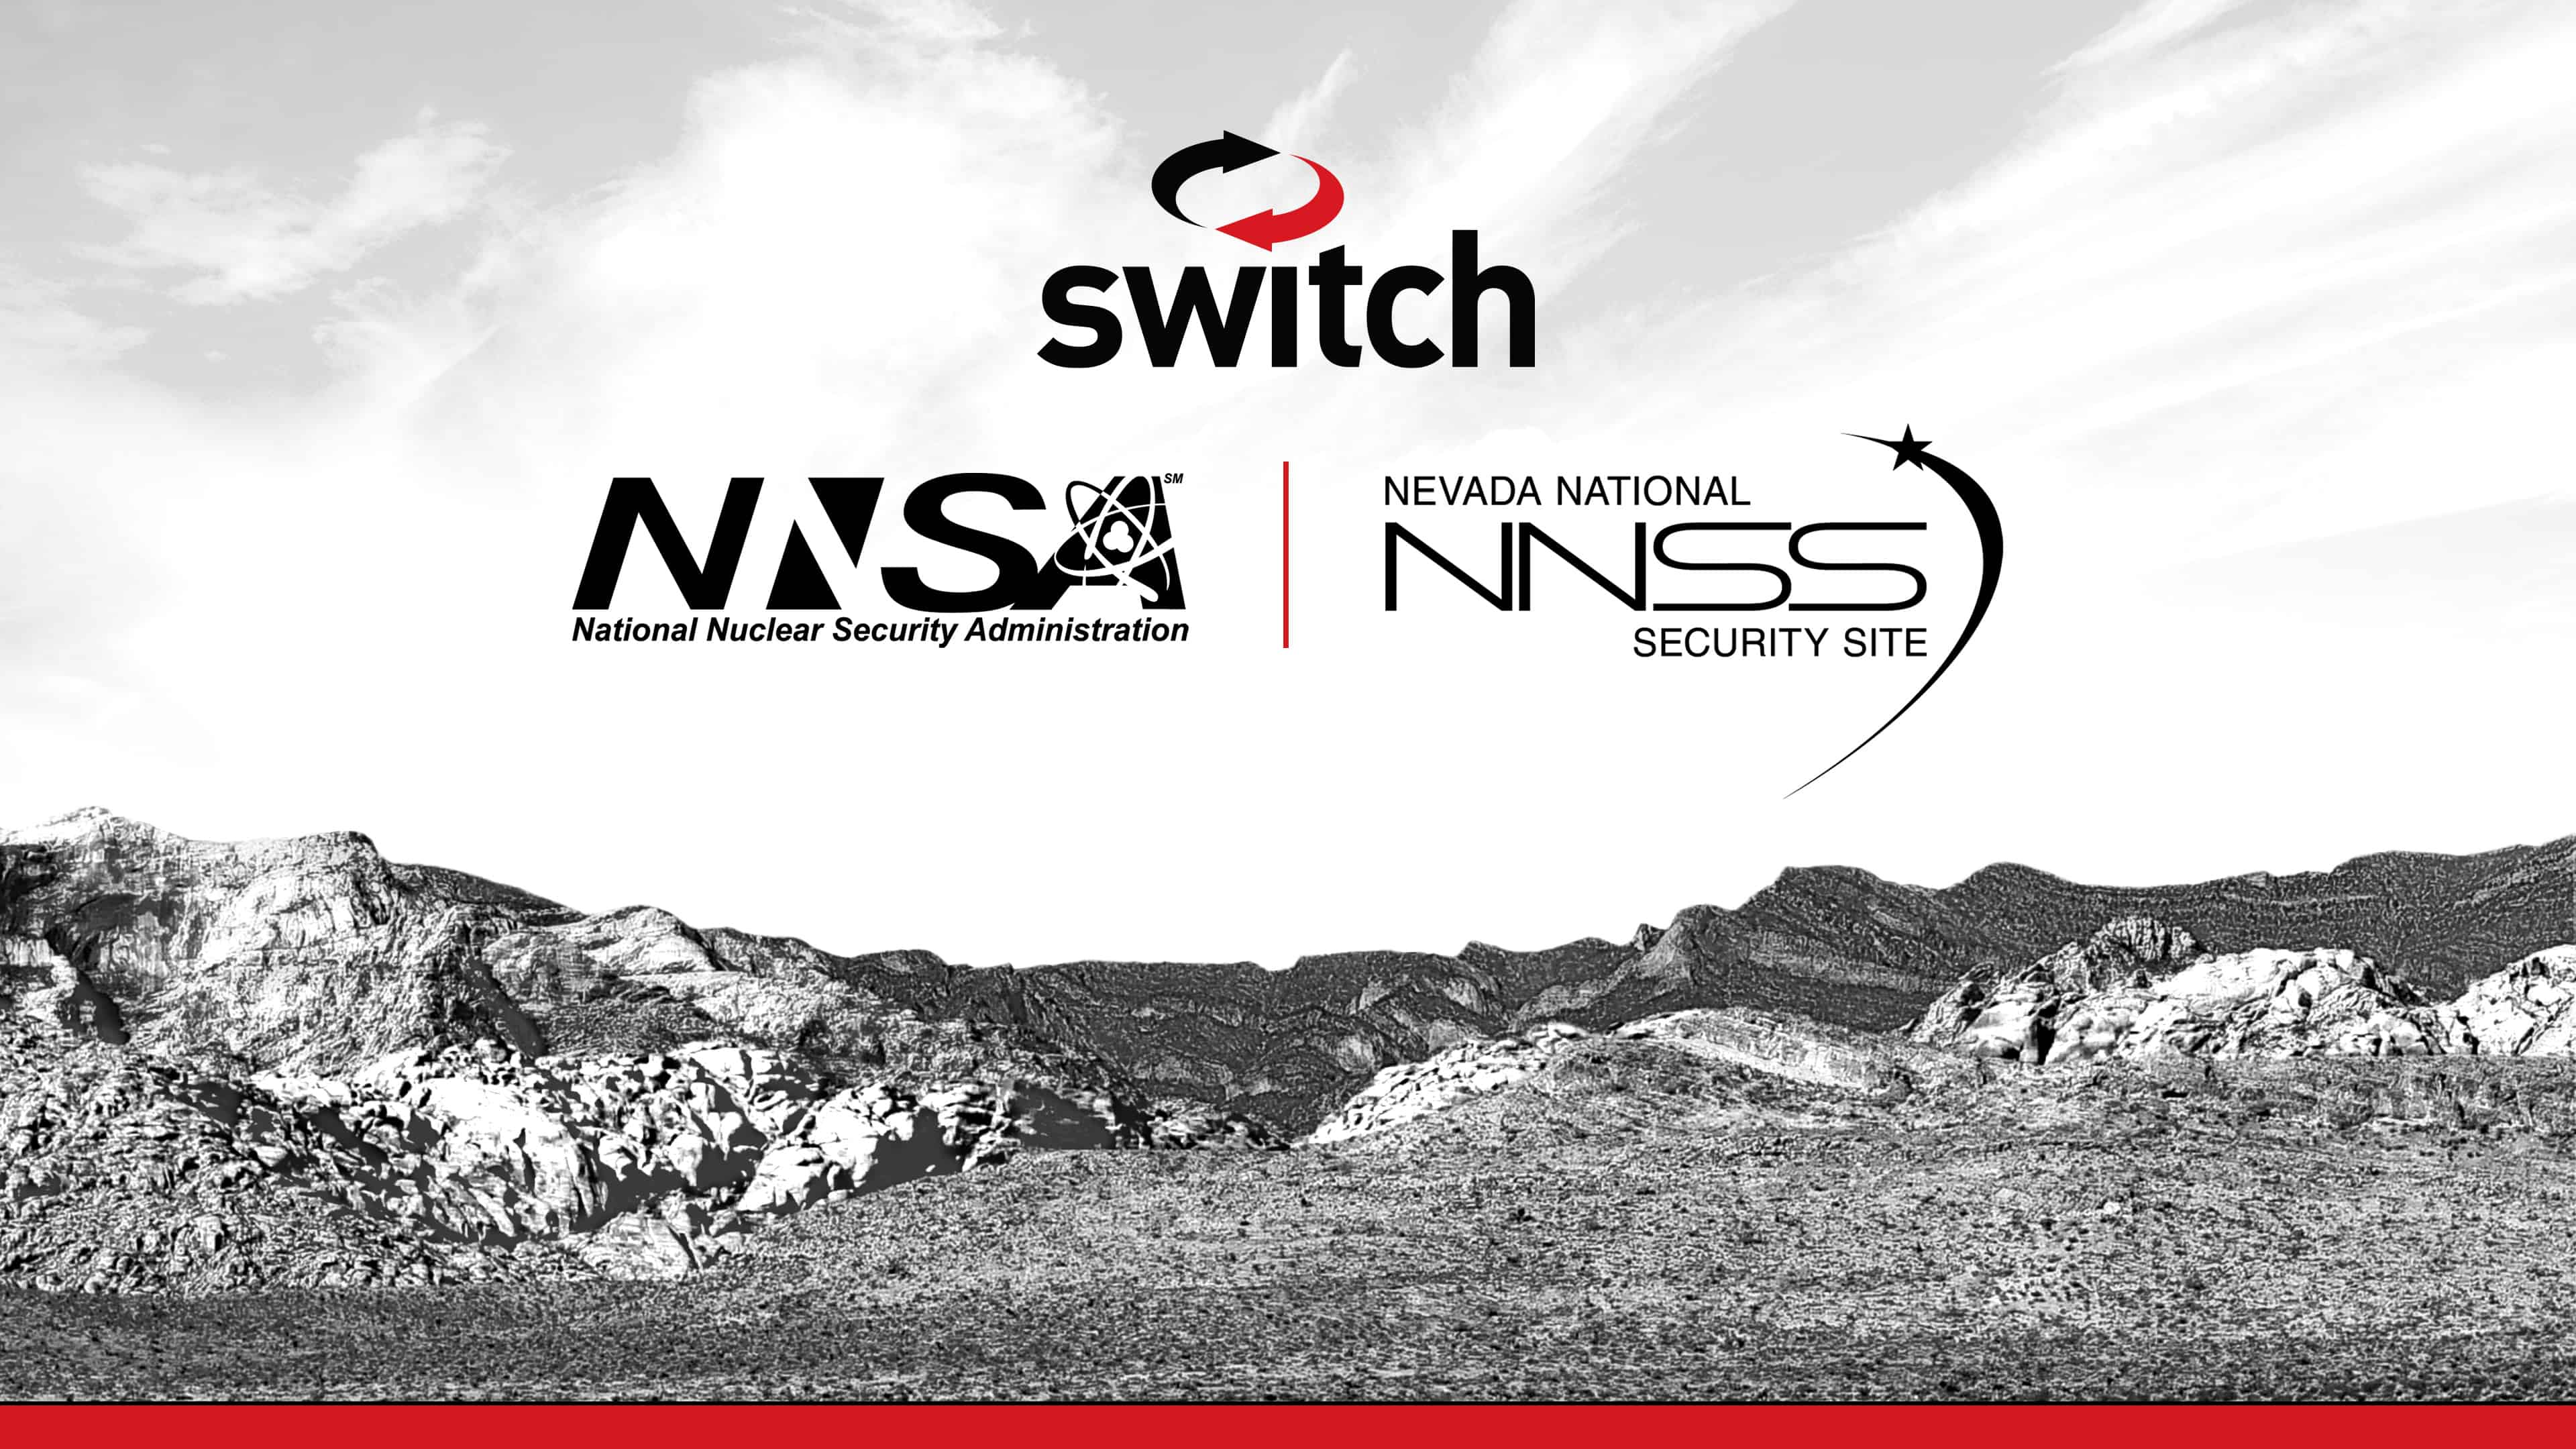 The Big Switch: NNSS Completes Emergency Communications Network Data Center Modernization